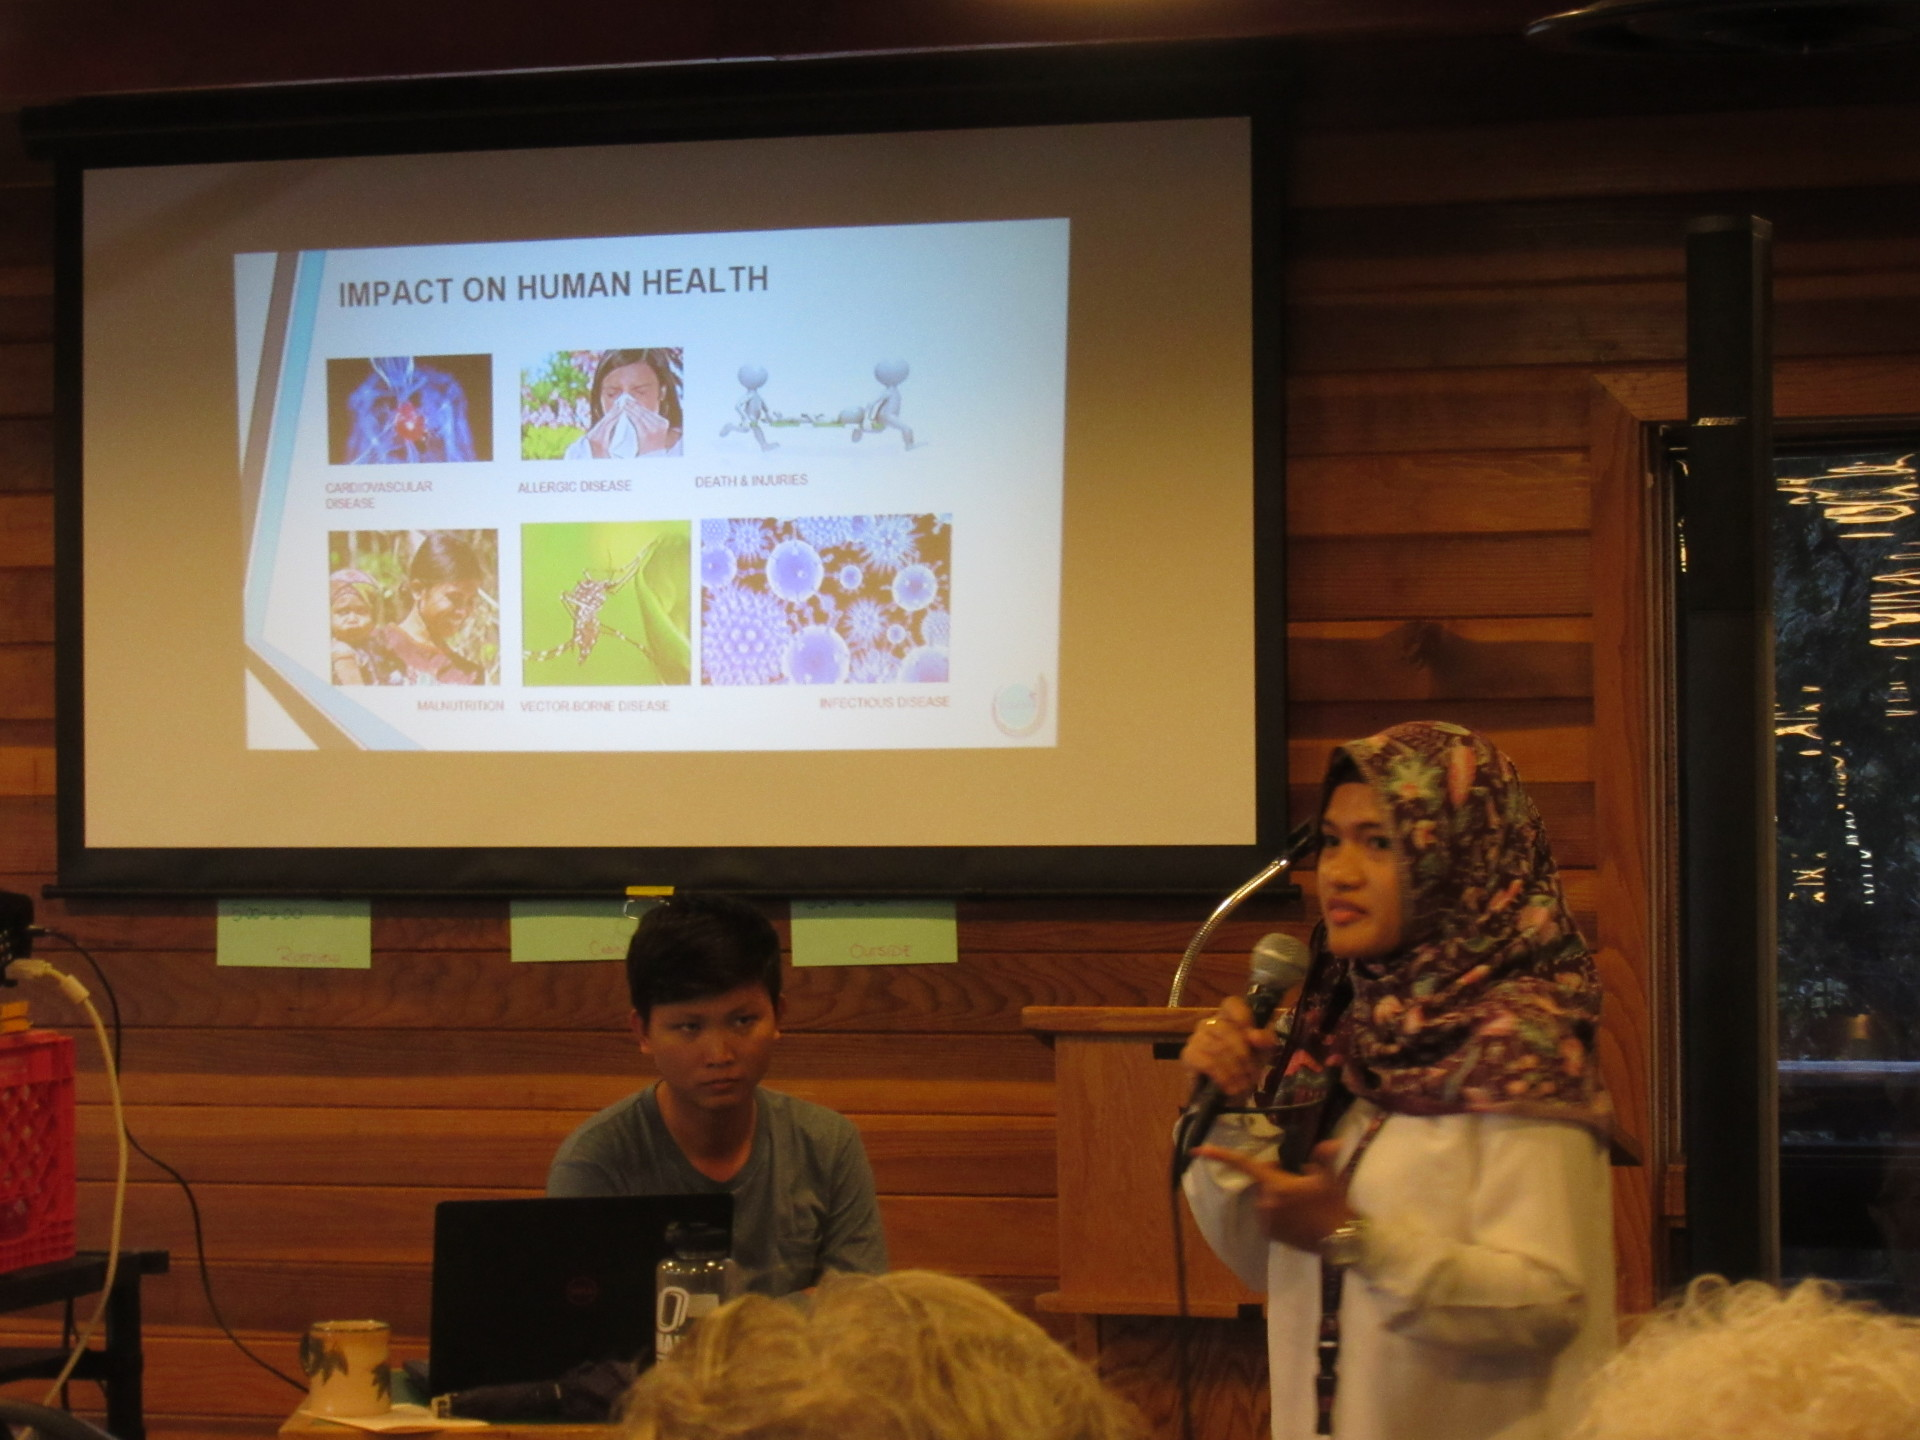 Arifah Nur Shadrina shares the impacts of a changing climate for her homeland of Indonesia